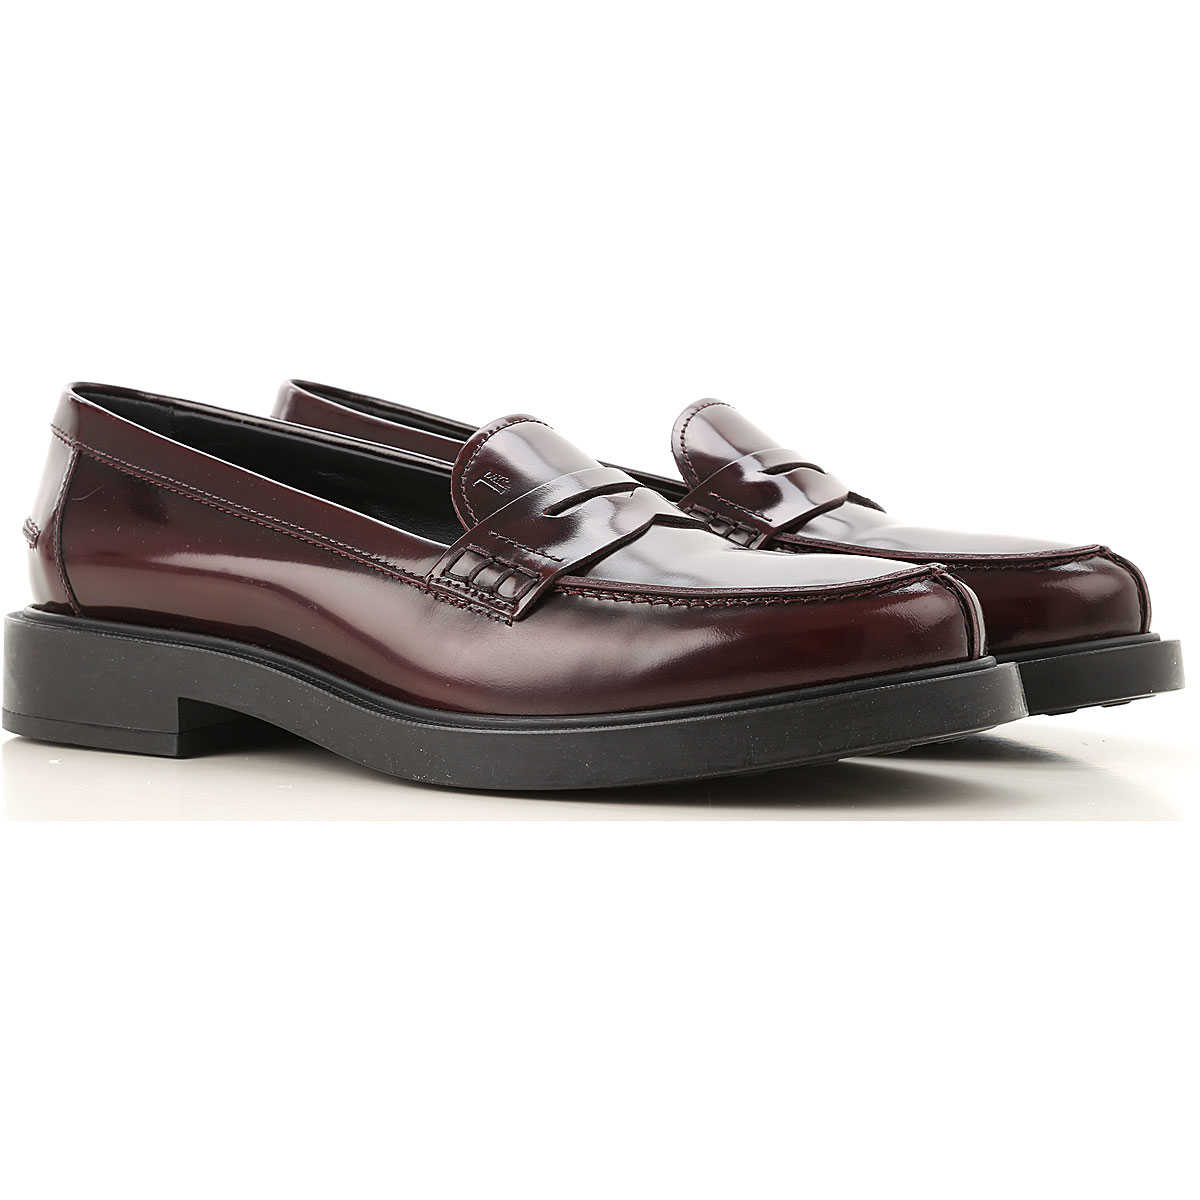 Tods Loafers for Women On Sale Bordeaux SE - GOOFASH